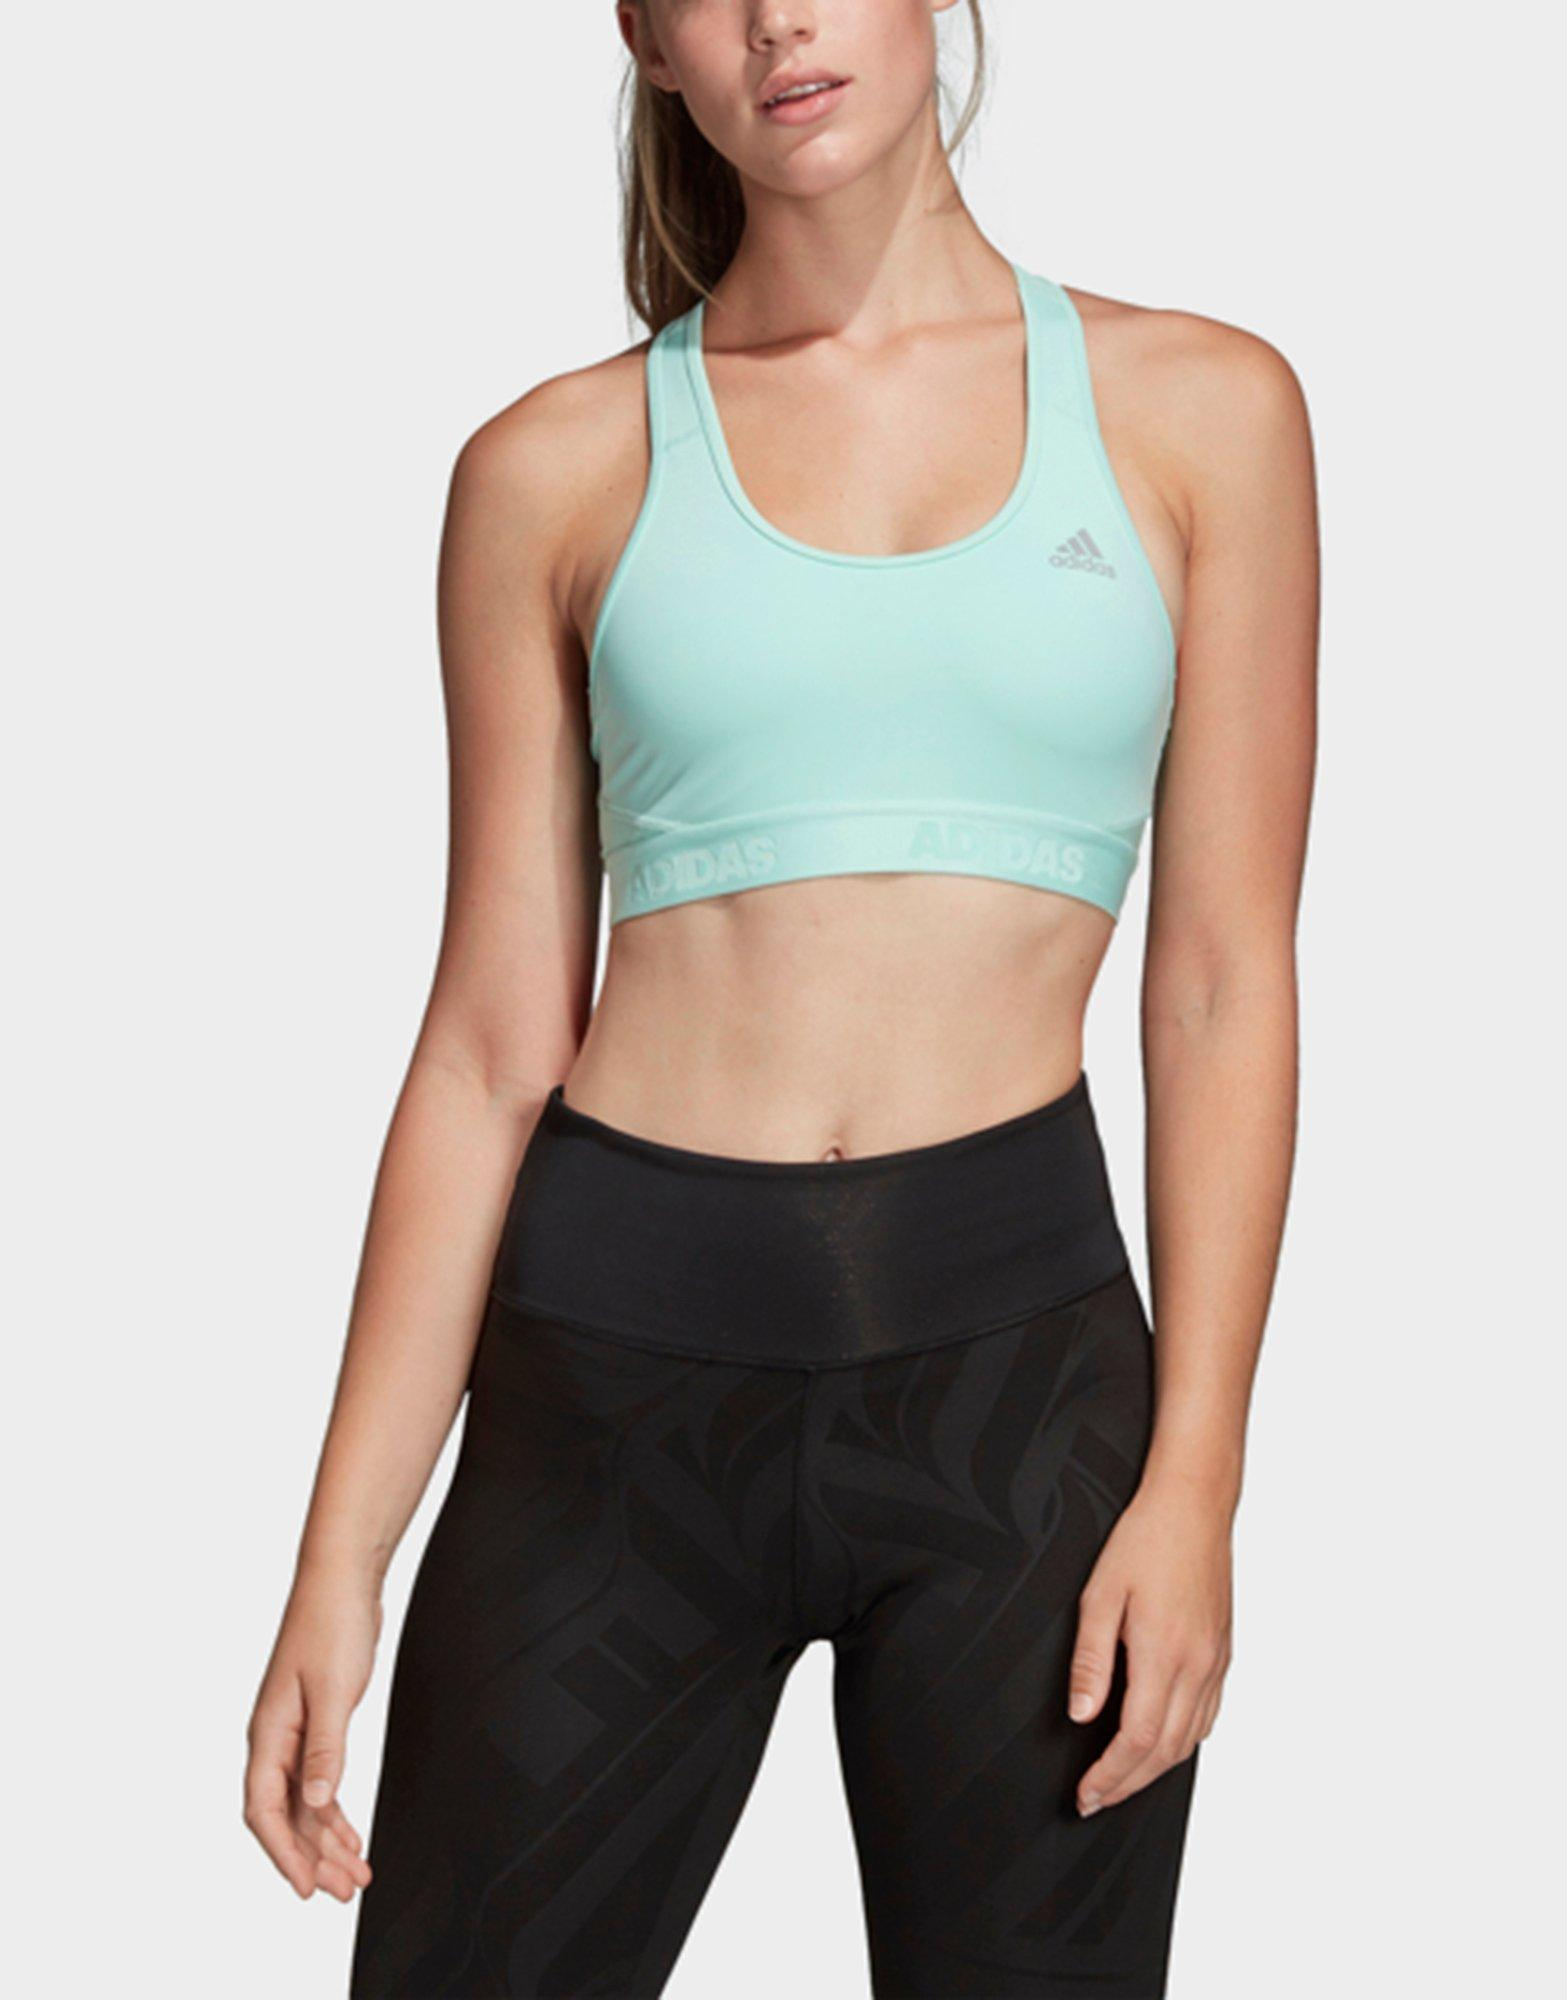 a6e7ee5a44133 Lyst - Adidas Don t Rest Alphaskin Sports Bra in Green